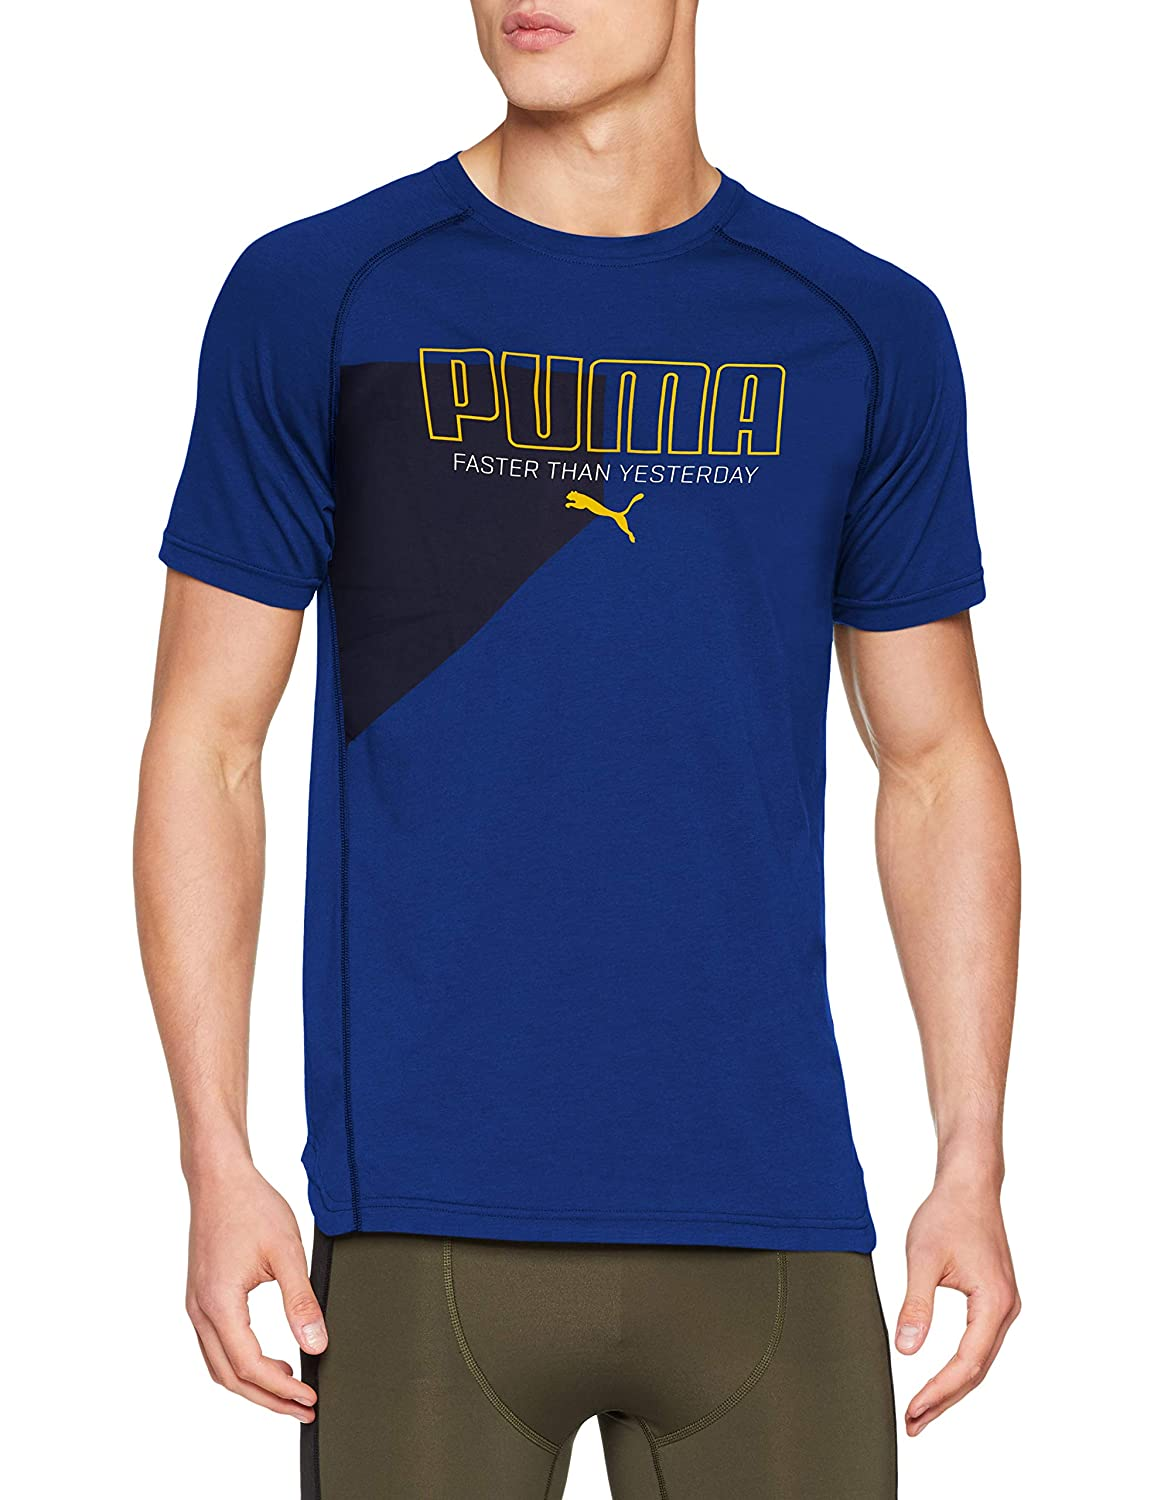 Puma Graphic Triblend Tee, T-Shirt Uomo 516951